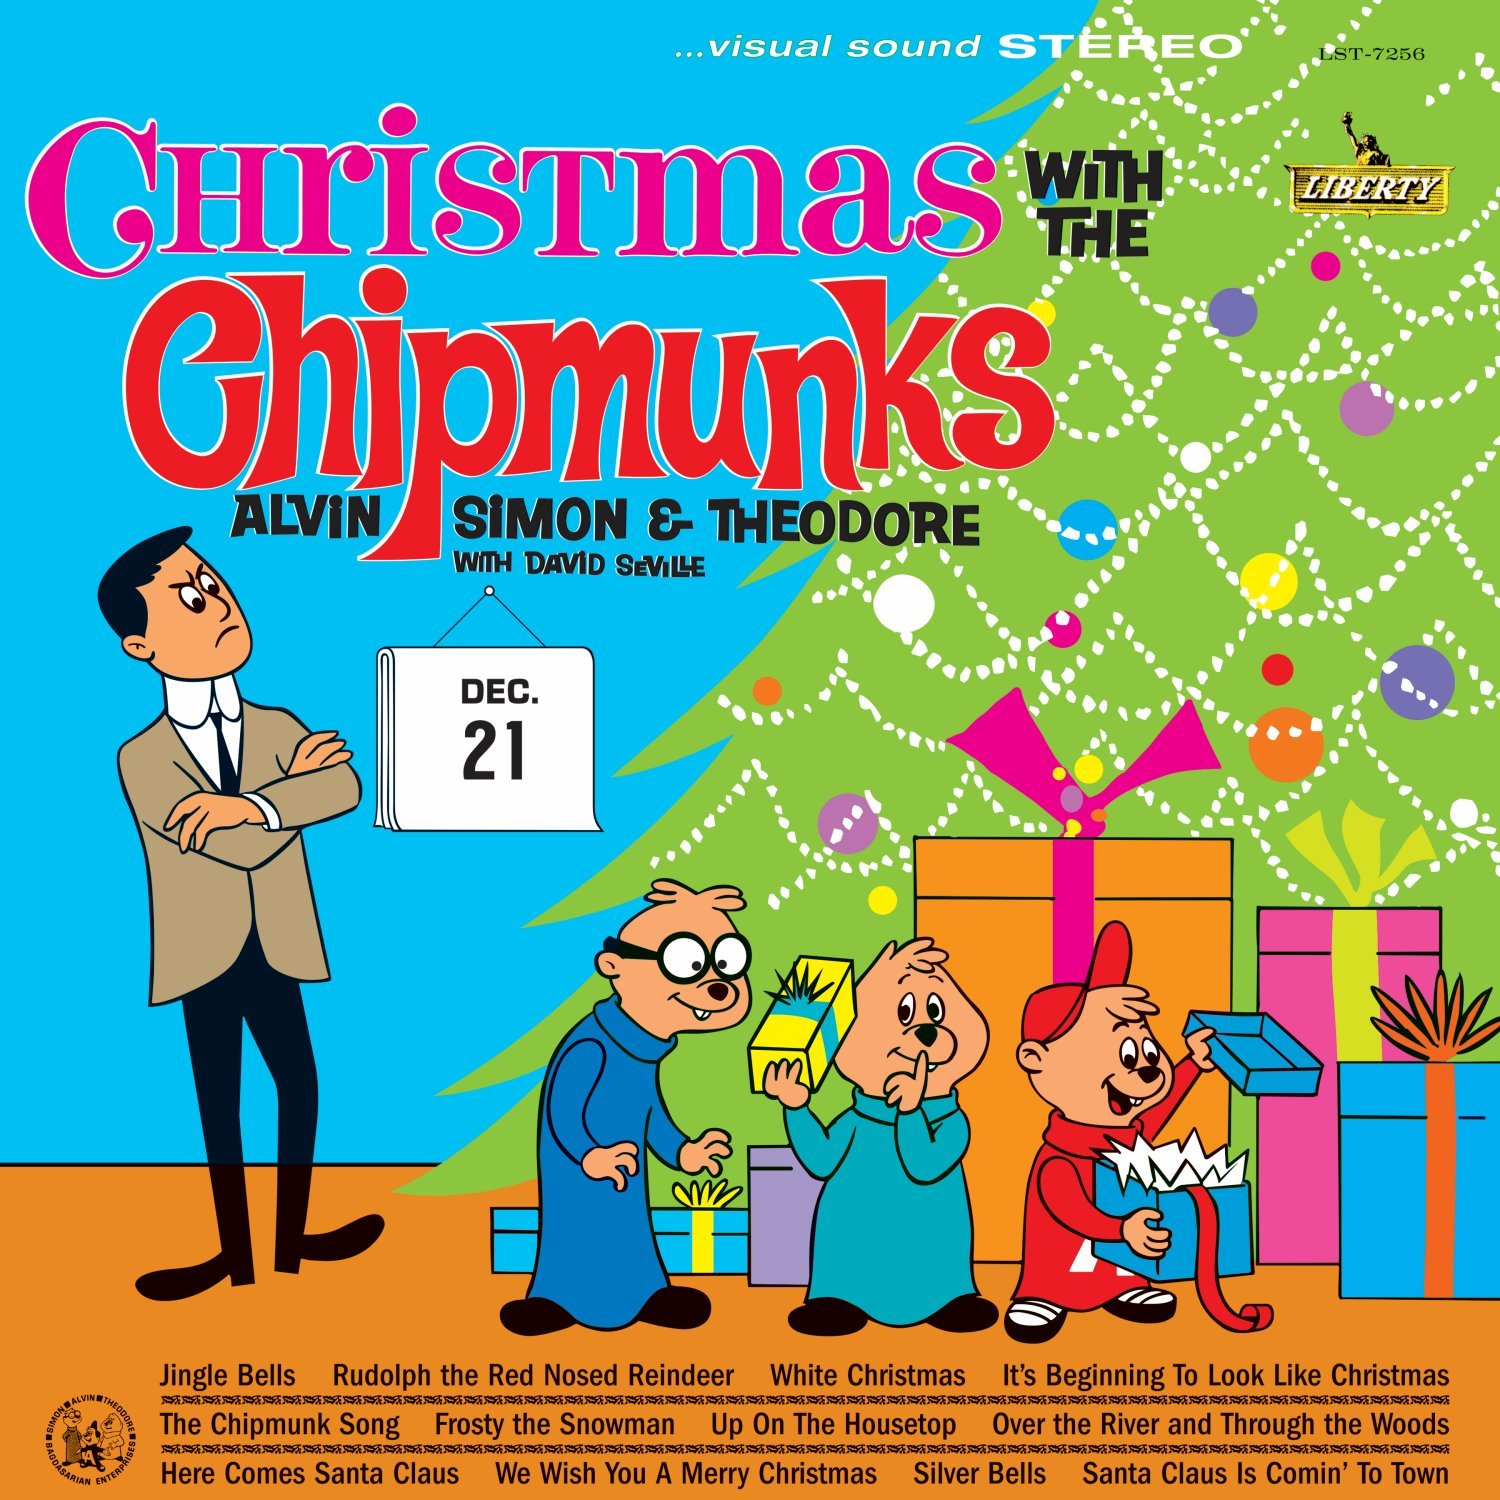 The Chipmunks-Christmas With The Chipmunks-REISSUE-CD-FLAC-1994-FLACME